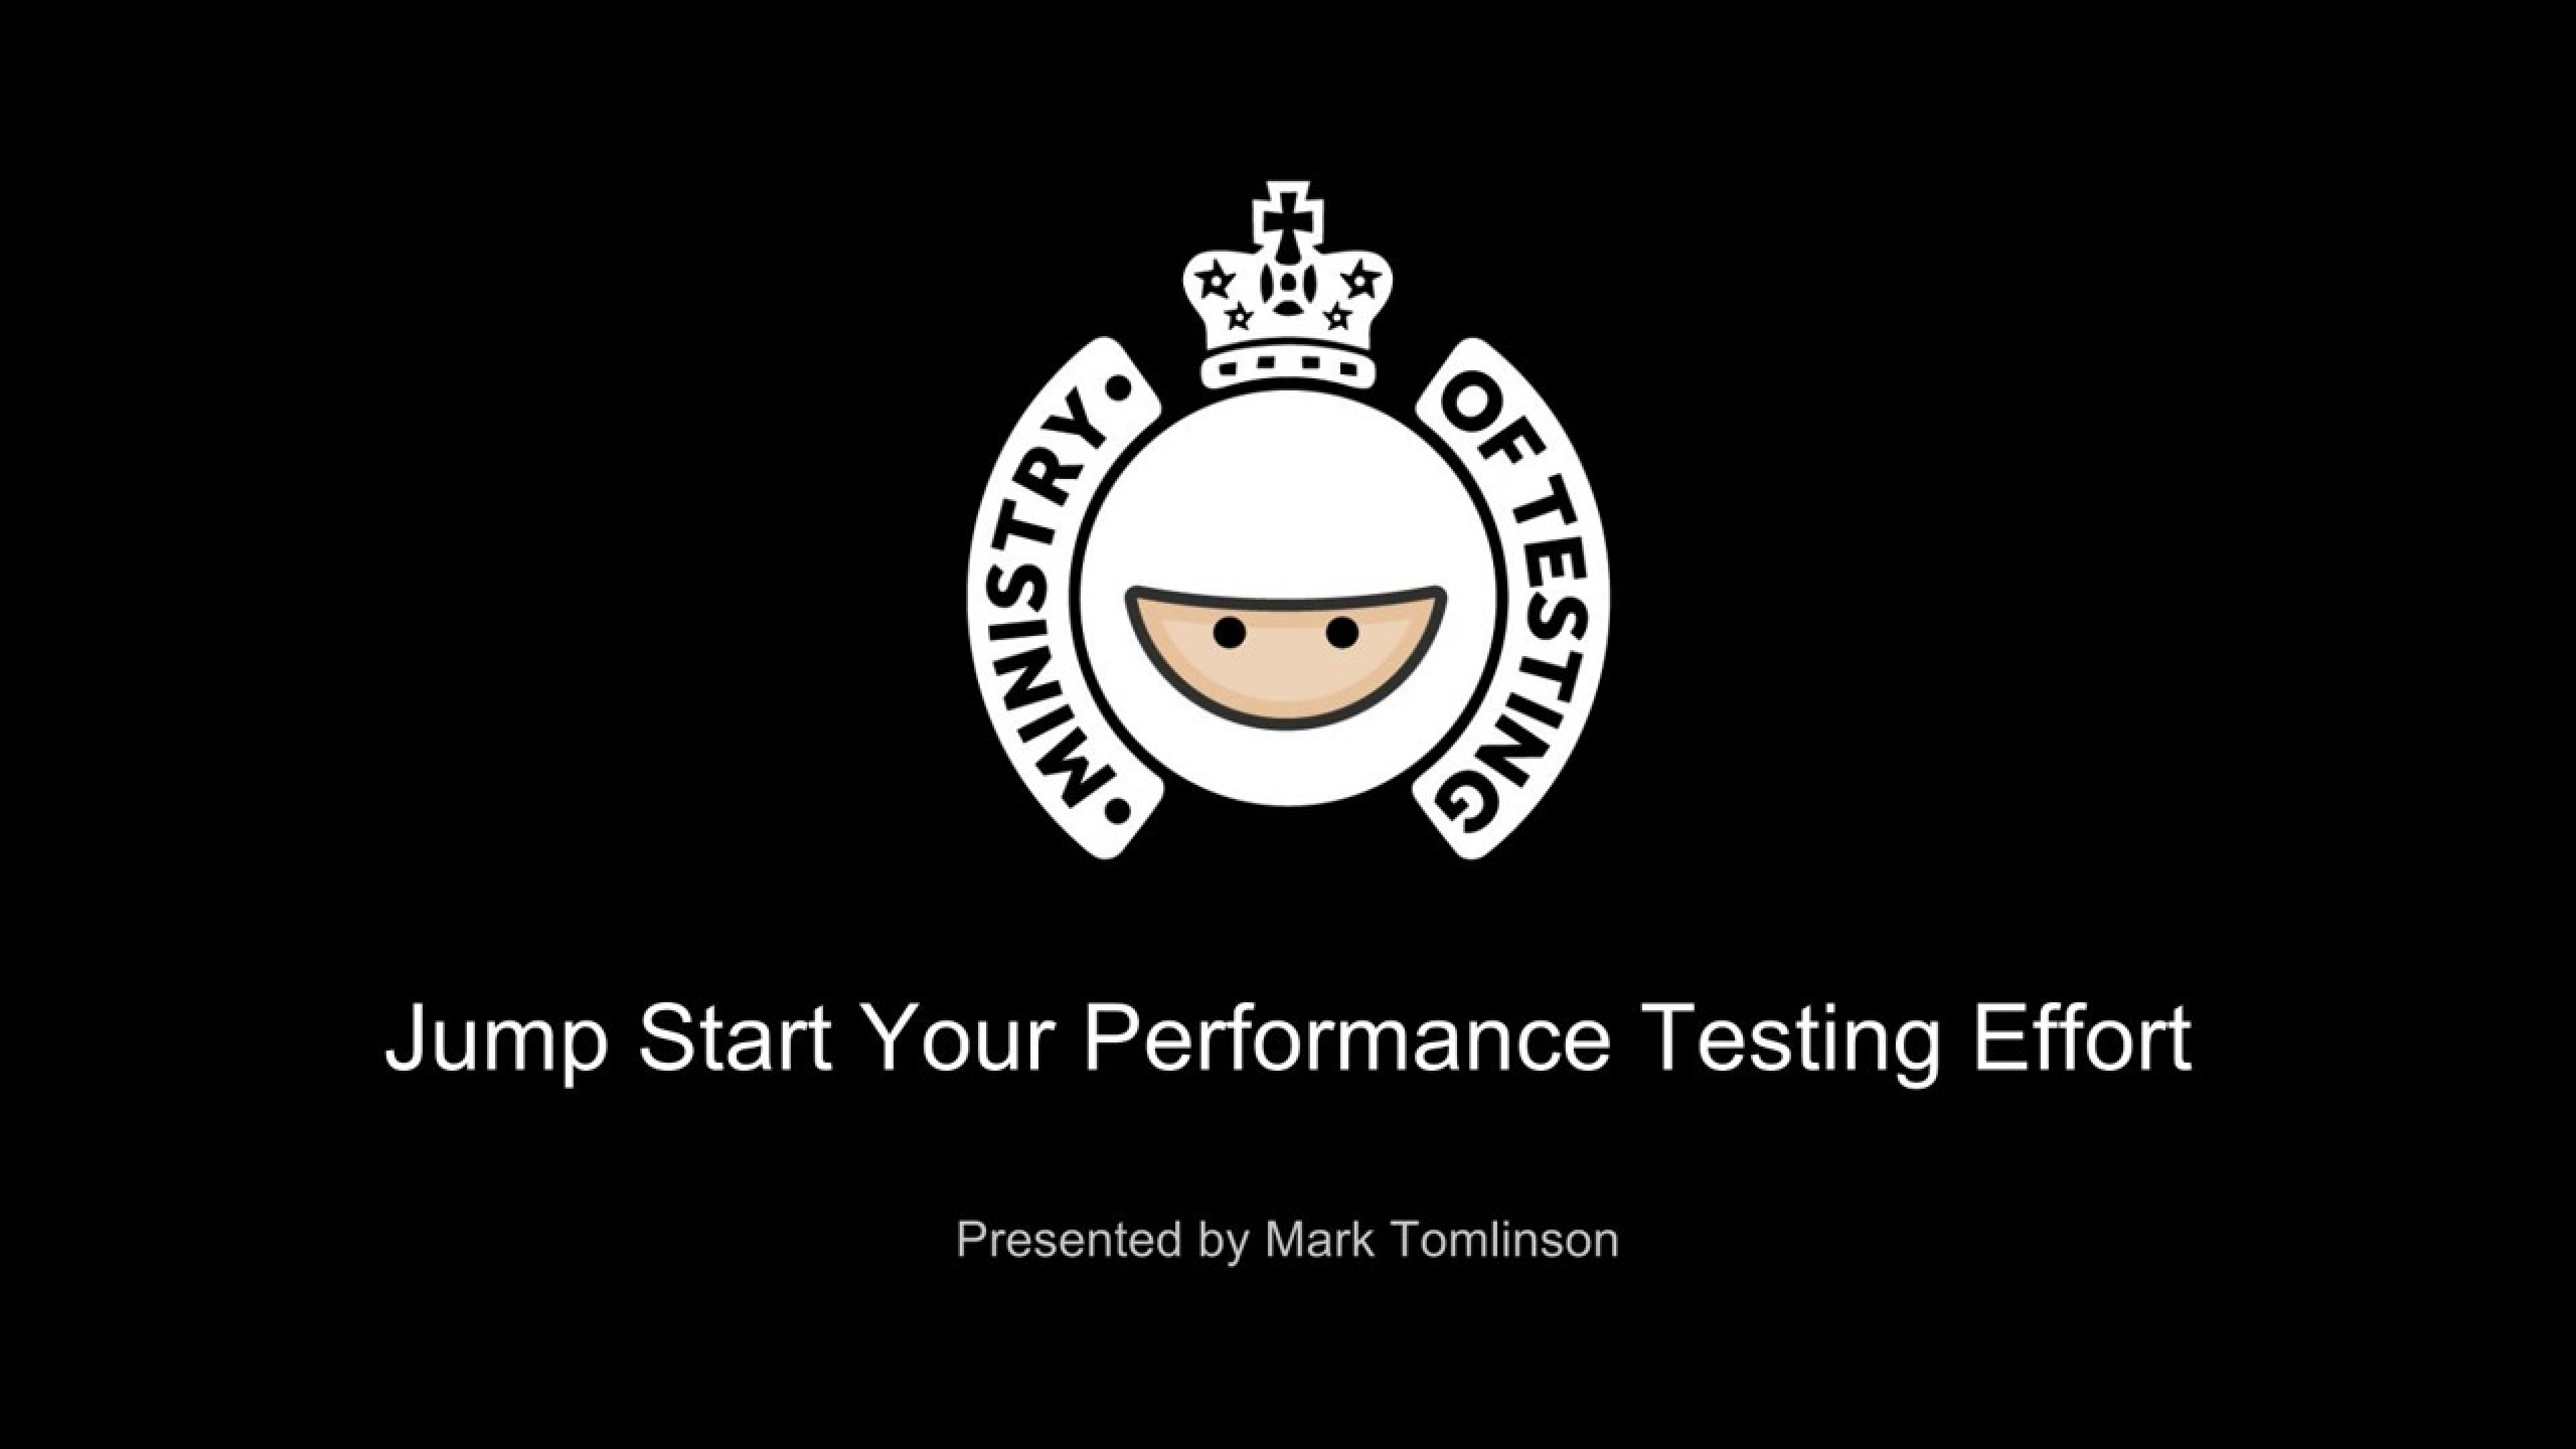 Jump Start Your Performance Testing Effort with Mark Tomlinson